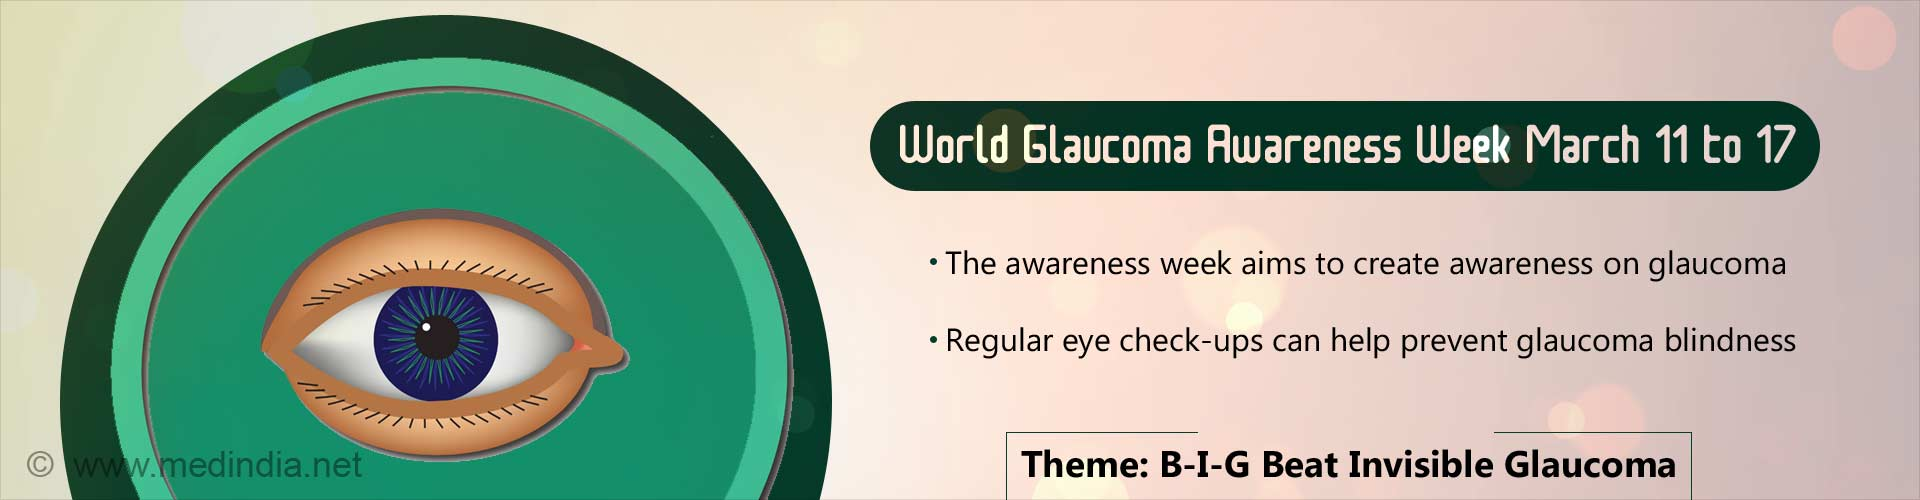 World Glaucoma Awareness Week- 'œB-I-G Beat Invisible Glaucoma'�